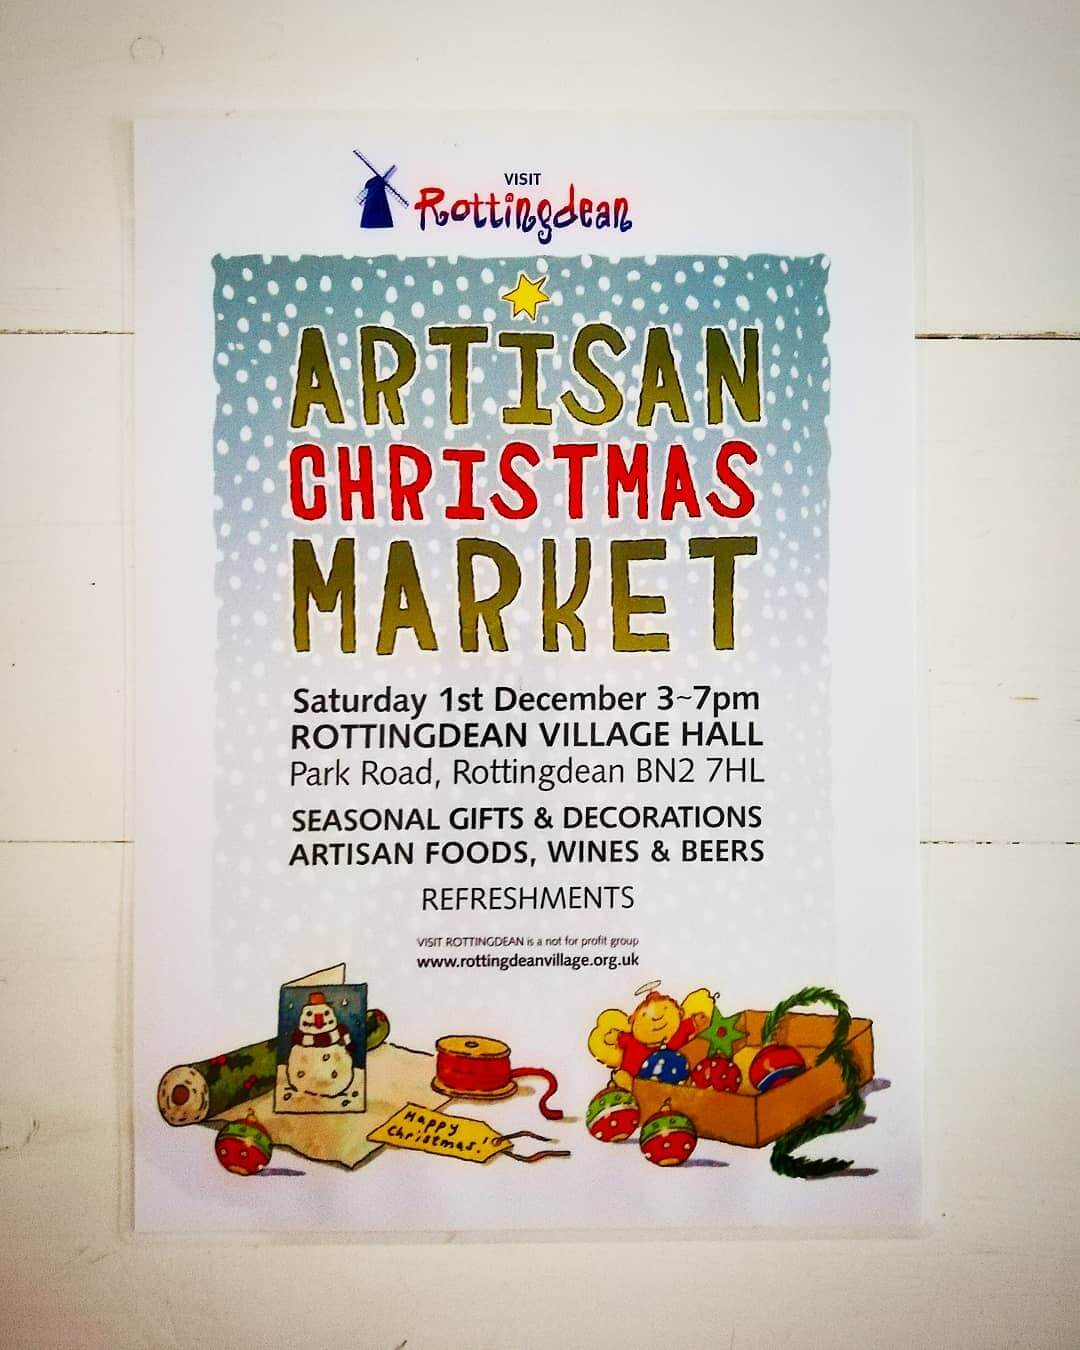 🎄 Rottingdean Artisan Christmas Market 🎄 Saturday 1st December 3pm – 7pm Village Hall